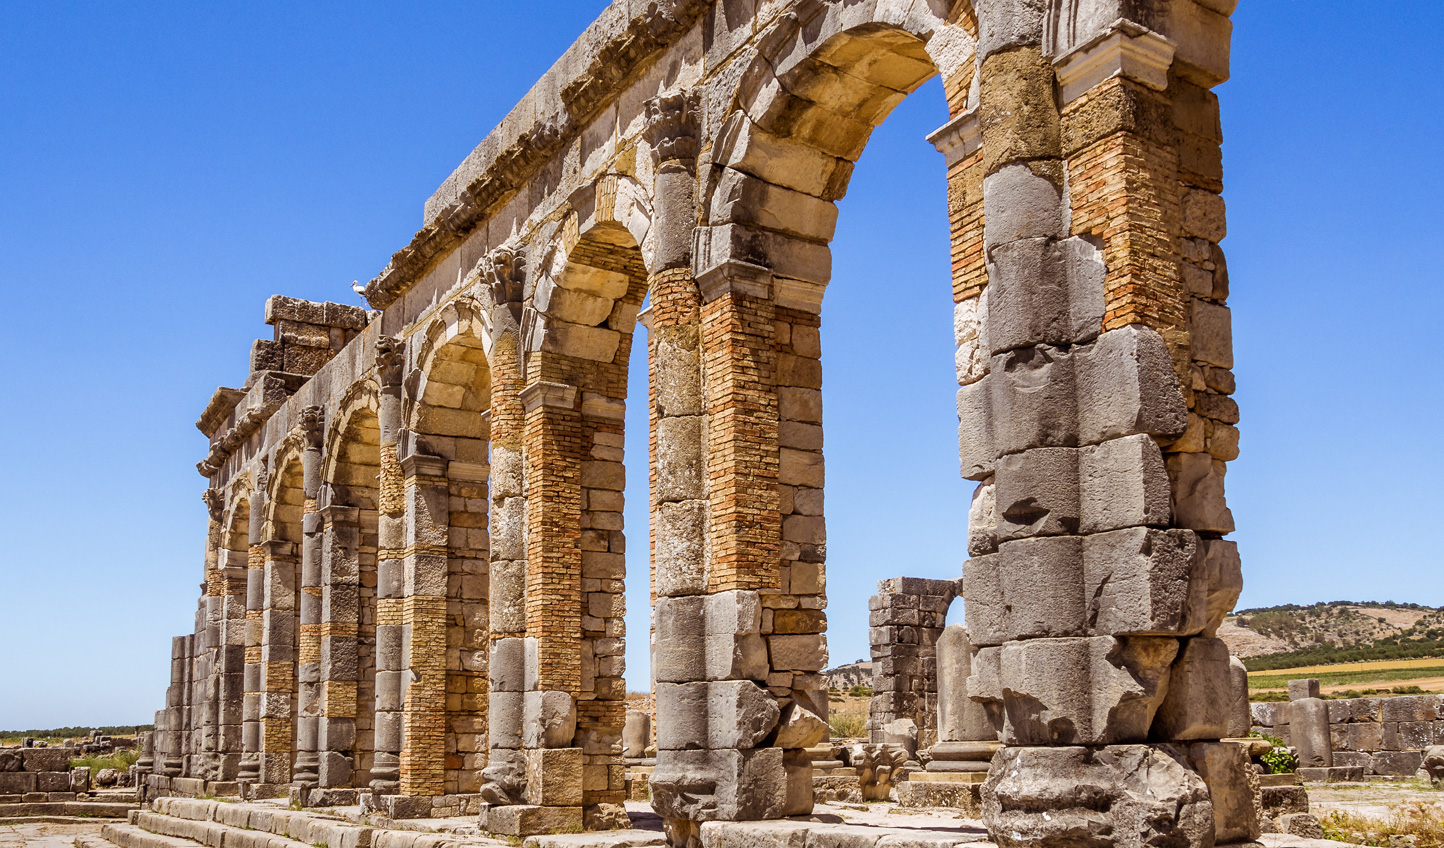 Take a trip out to ancient Volubilis